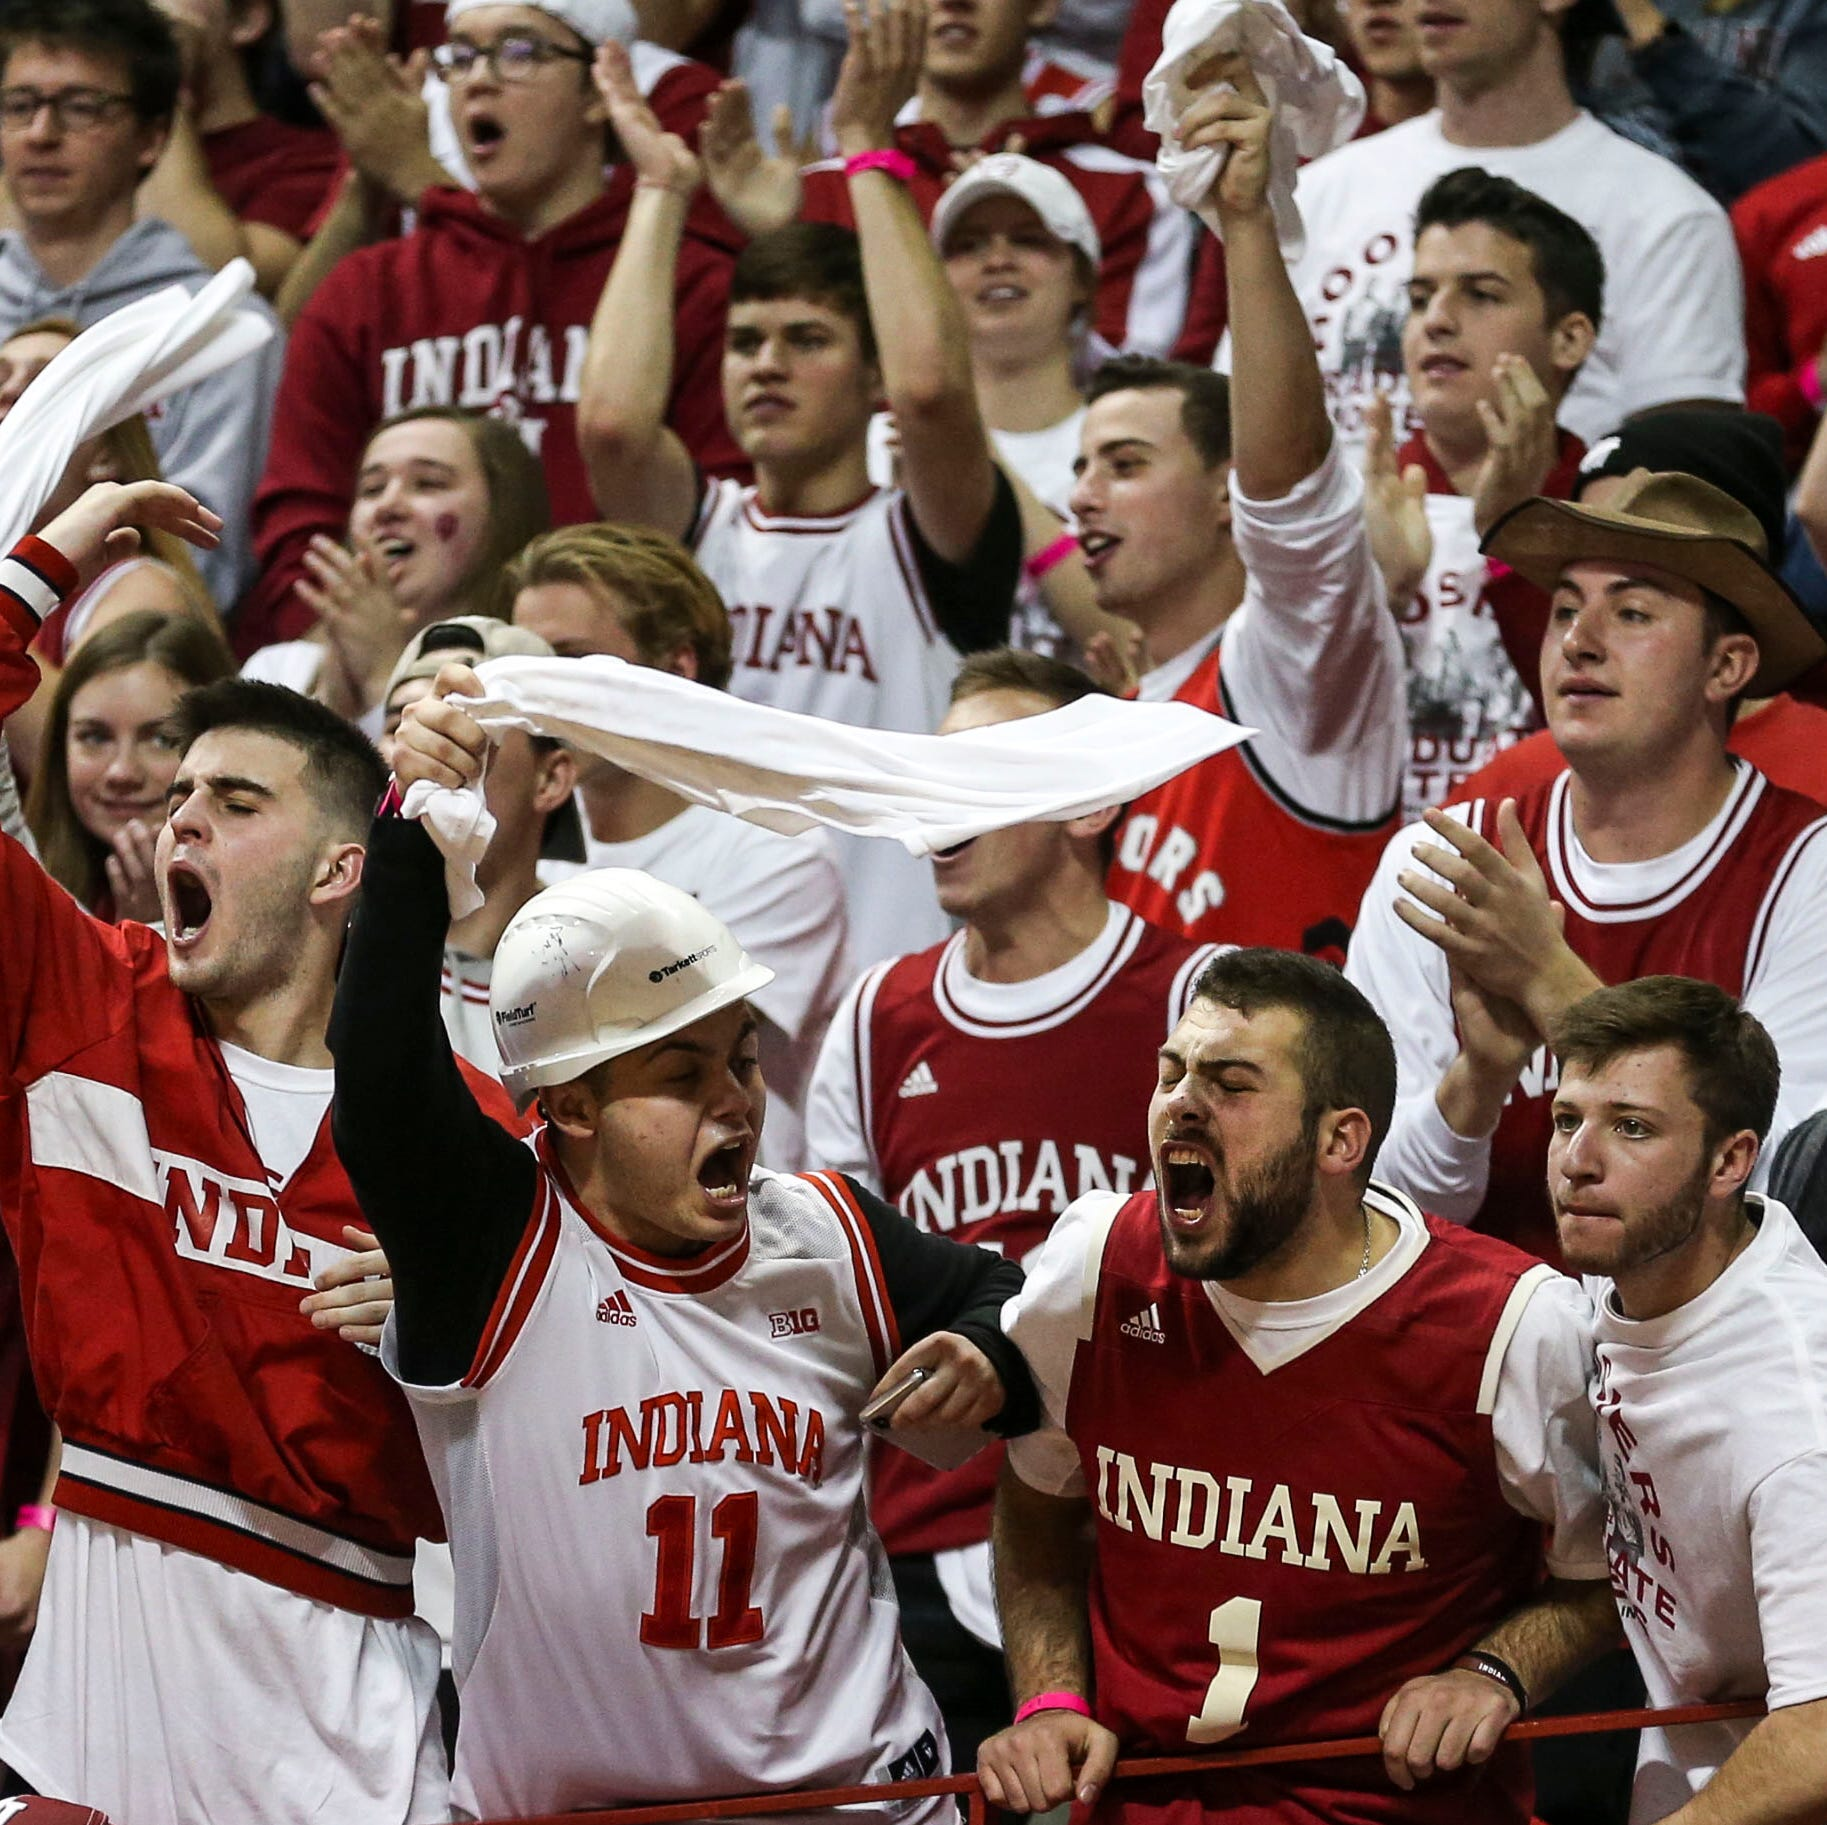 Indiana basketball could use some good news right about now